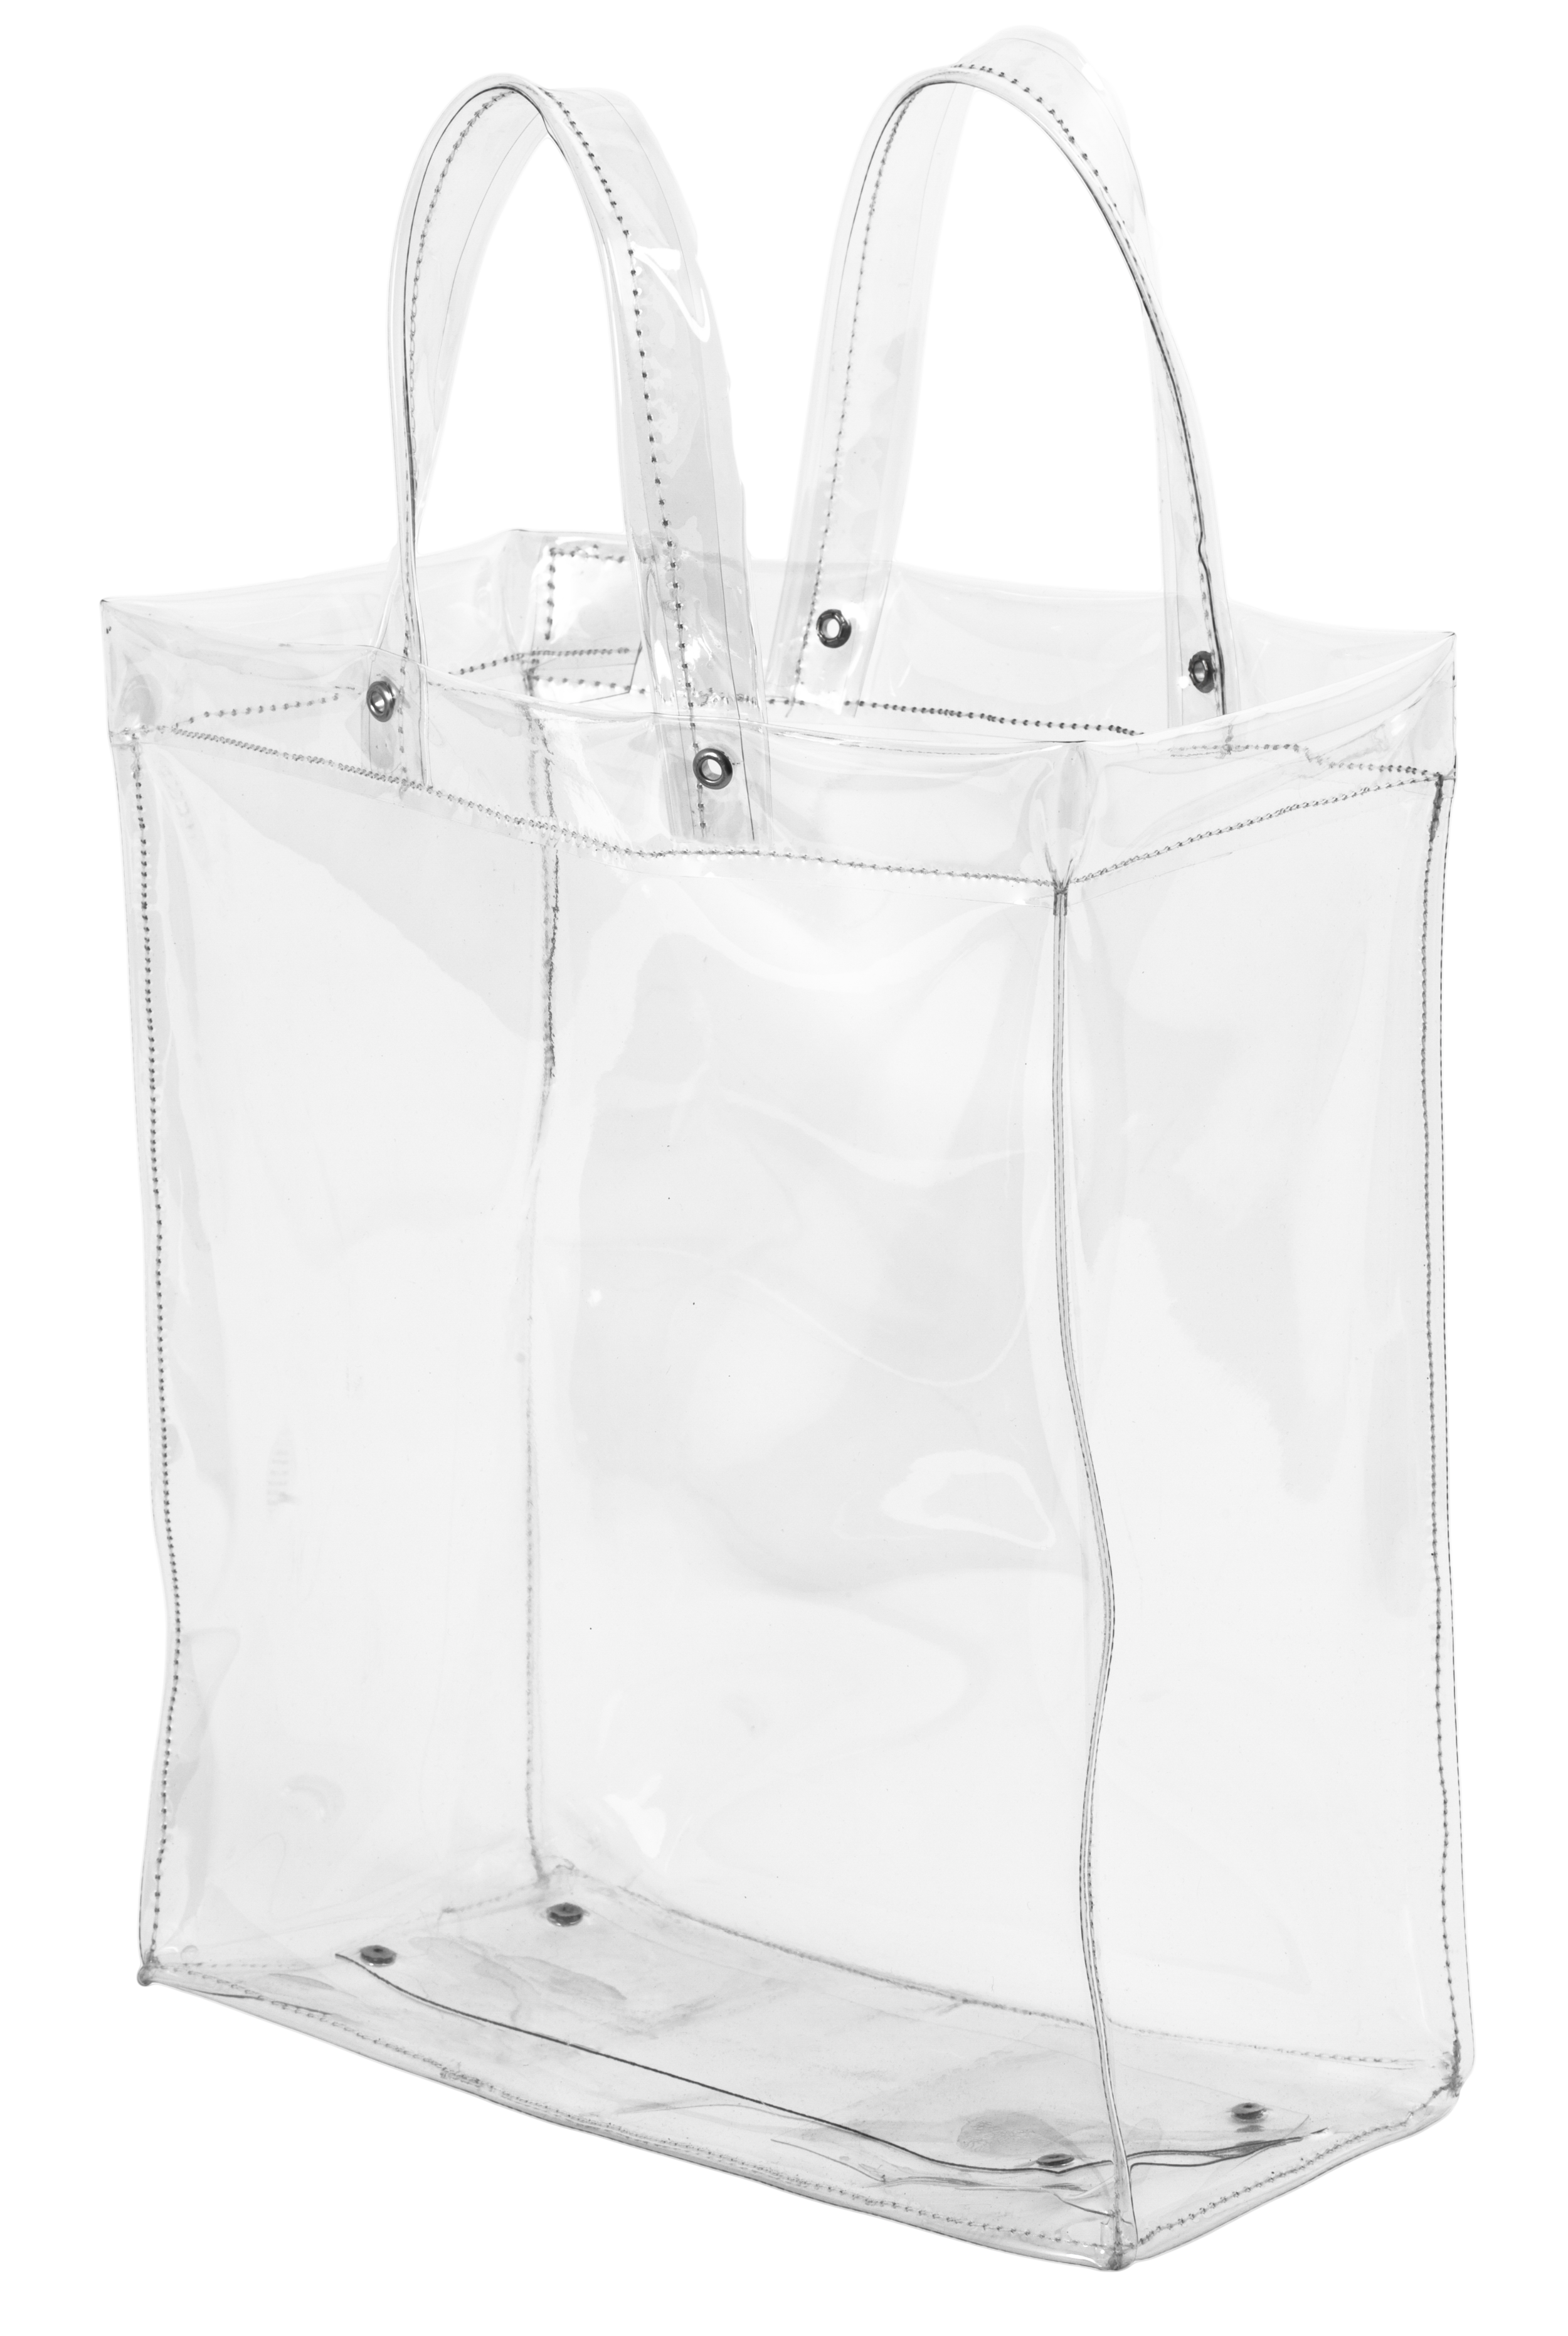 clear_bag.png